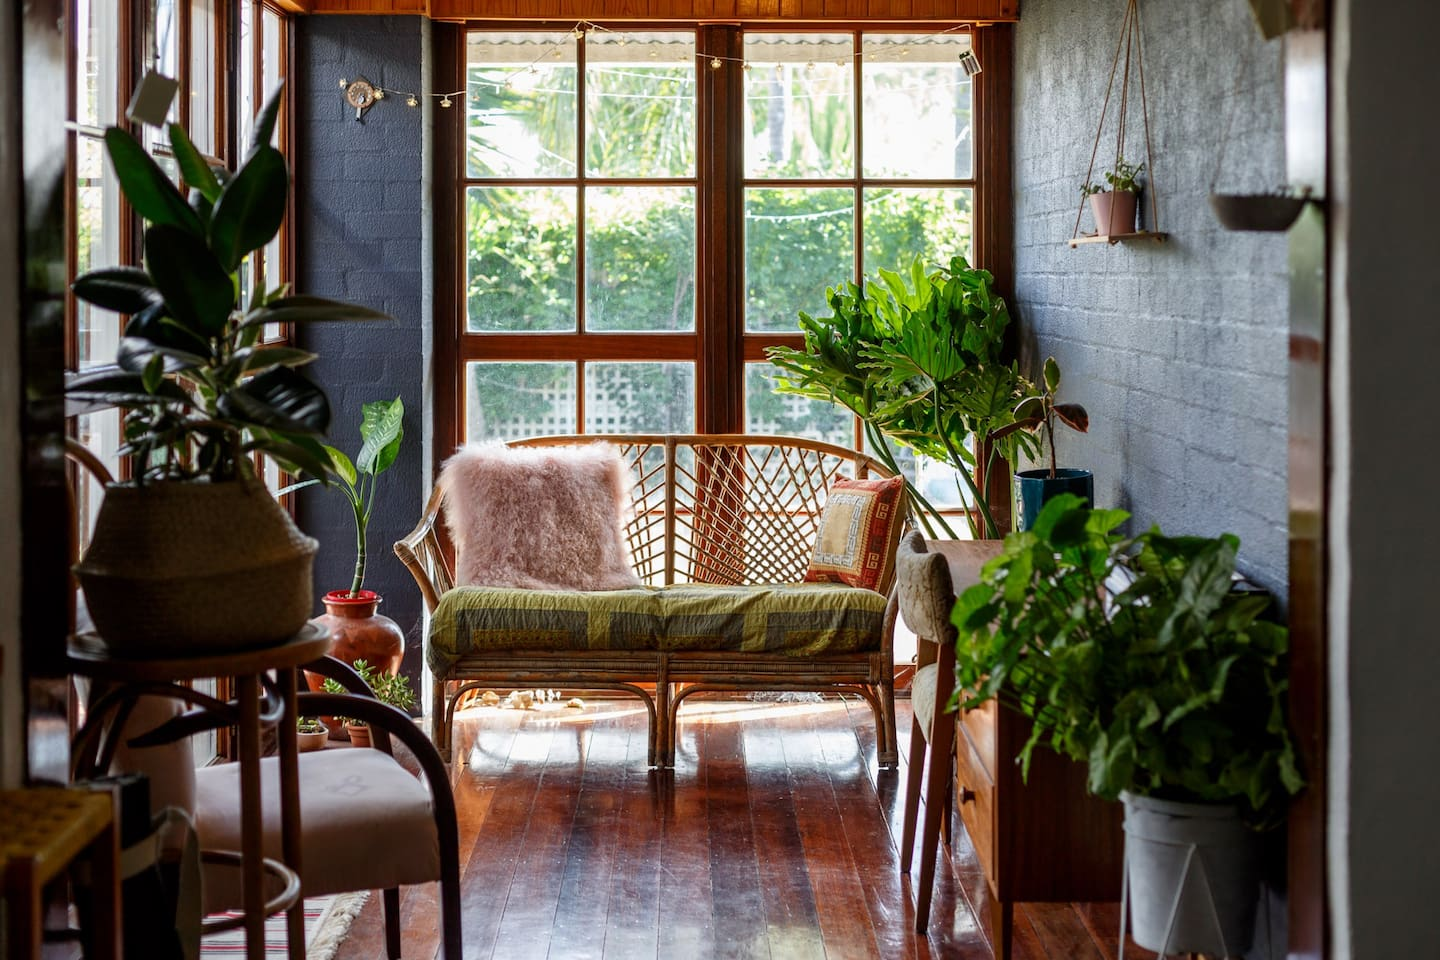 The sunroom in the afternoon